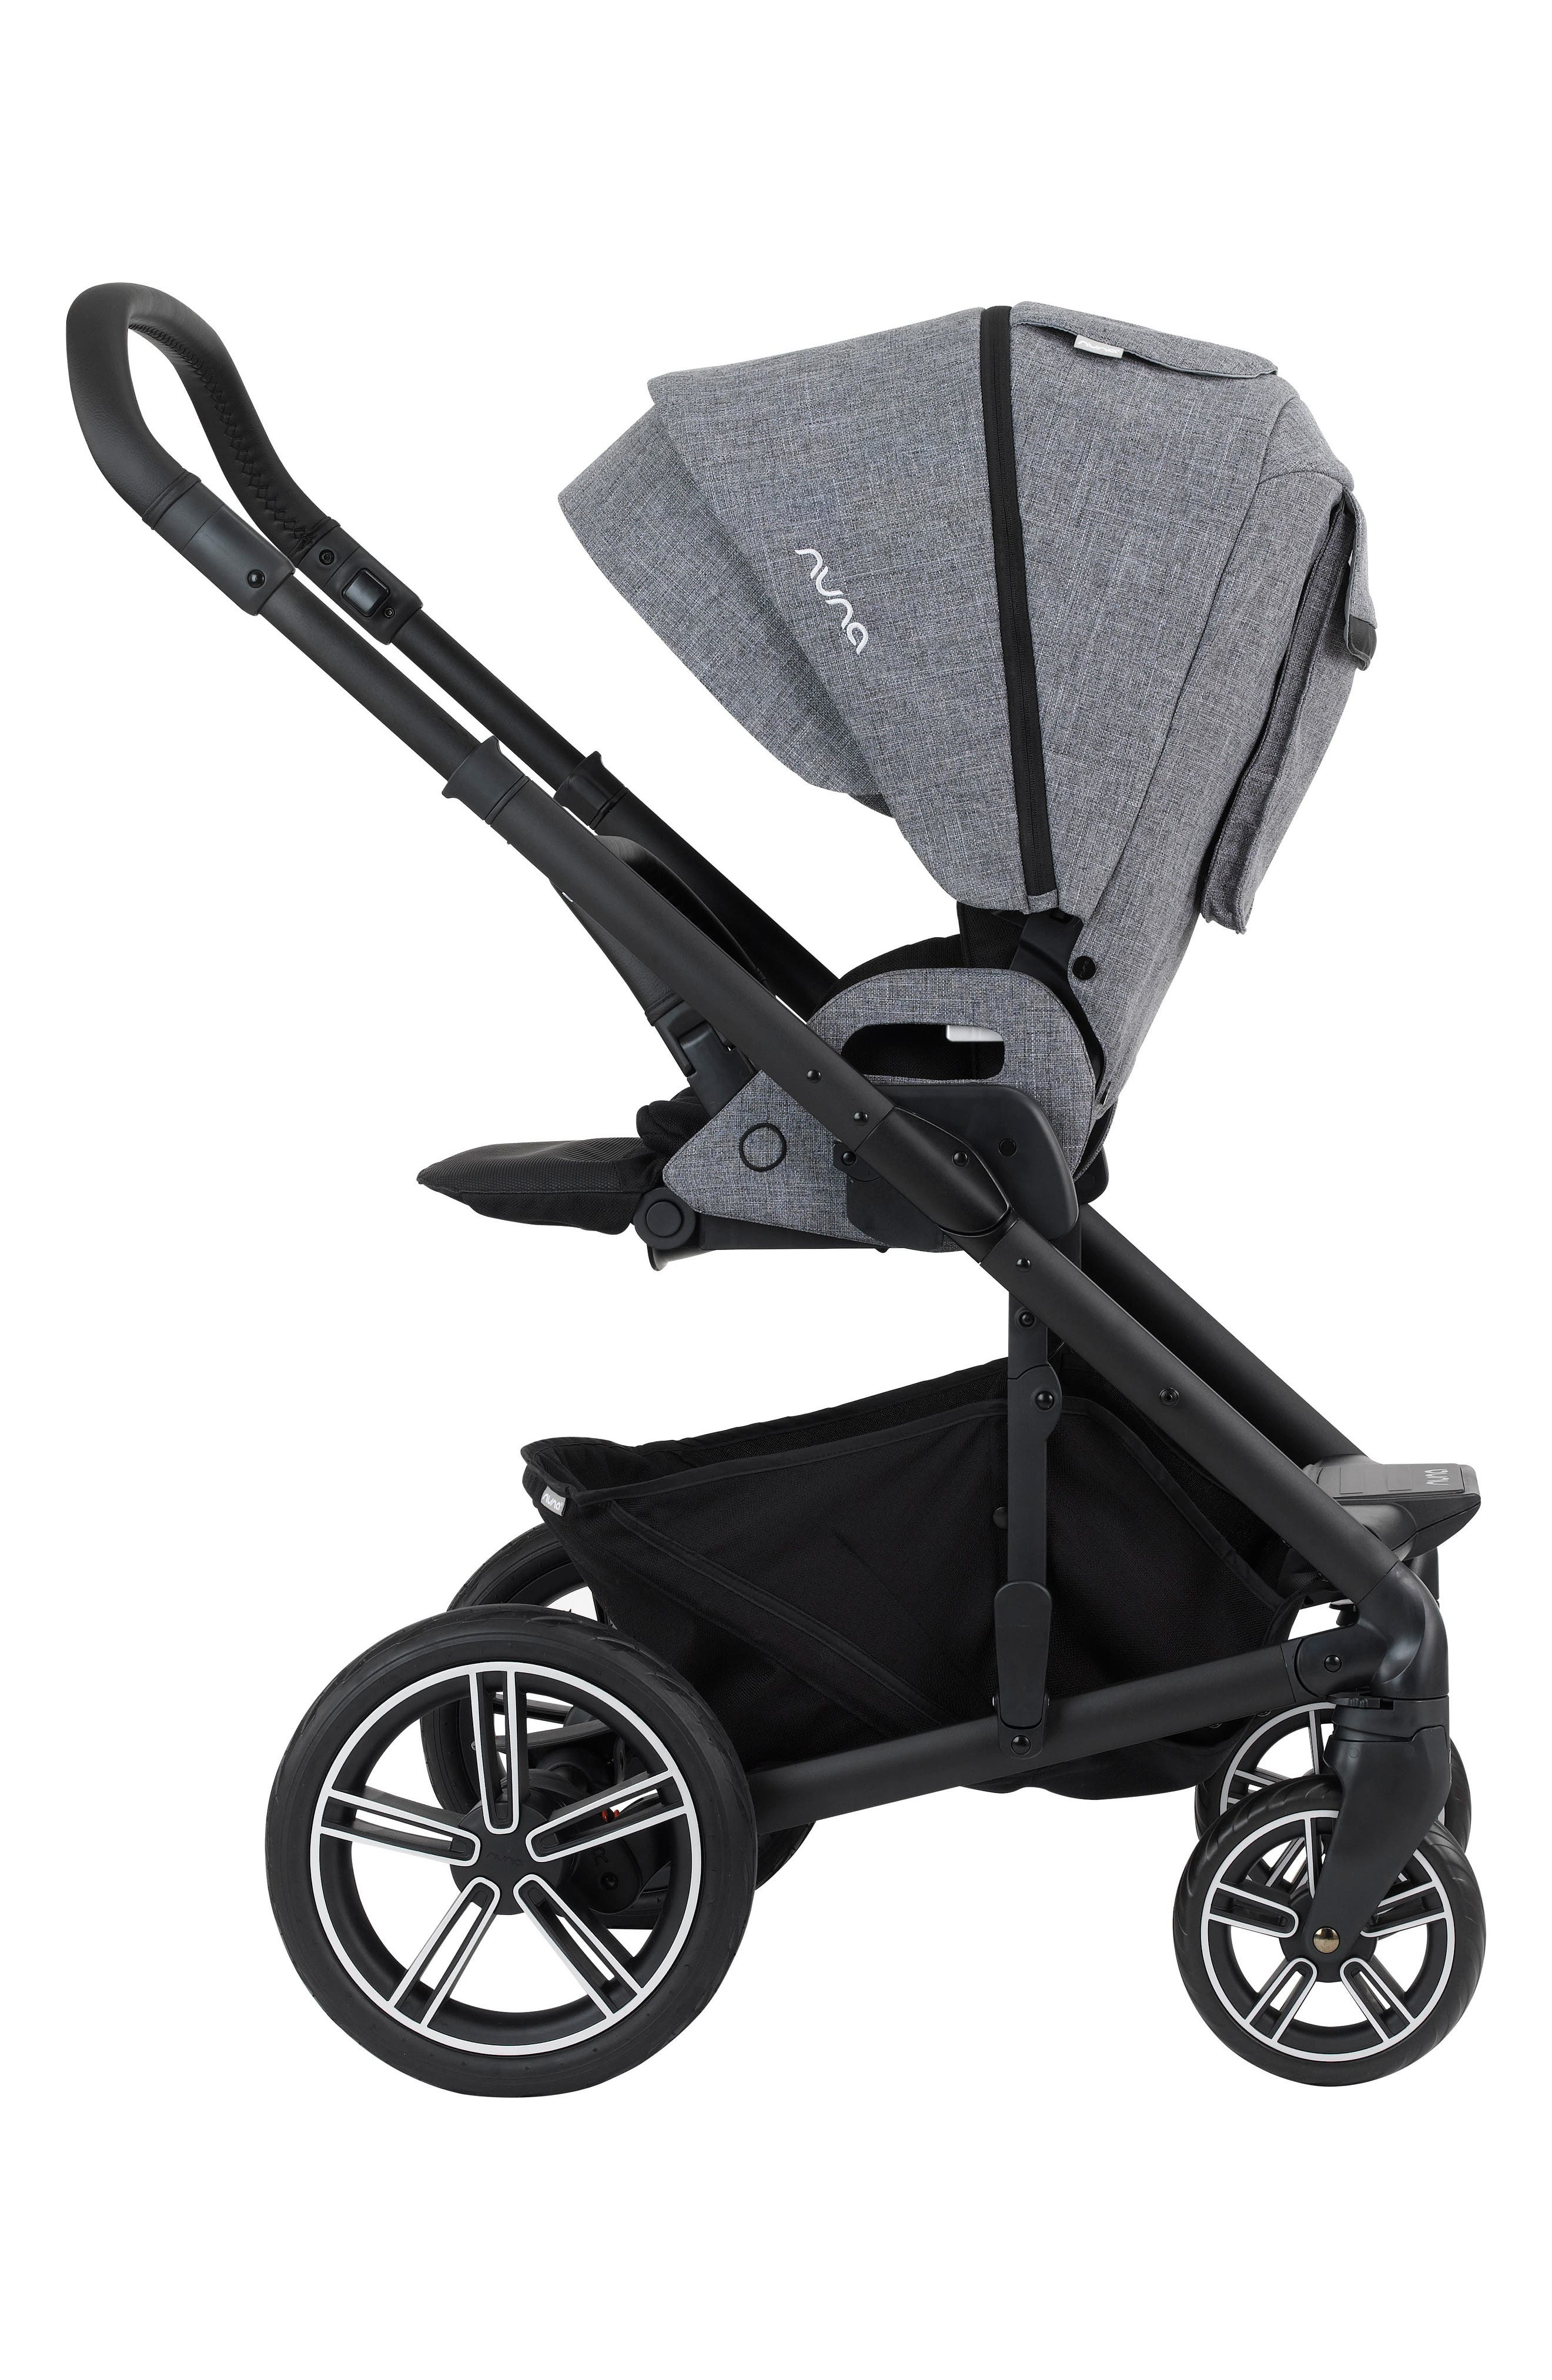 MIXX<sup>™</sup> 2 Stroller System & PIPA<sup>™</sup> Car Seat Set,                             Alternate thumbnail 2, color,                             020